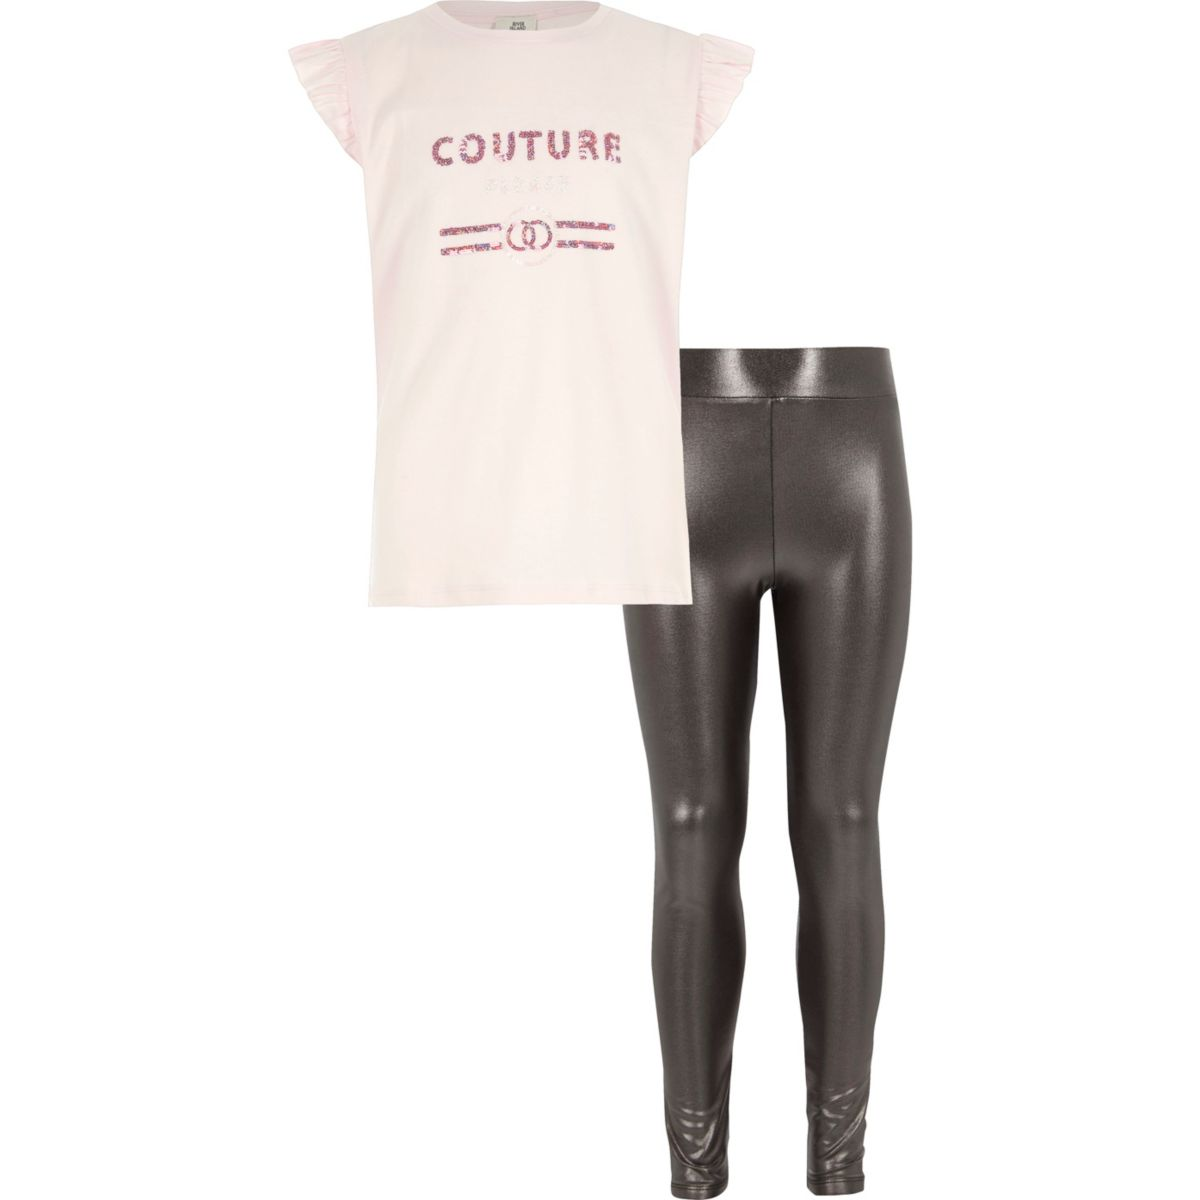 Girls pink top and metallic leggings outfit